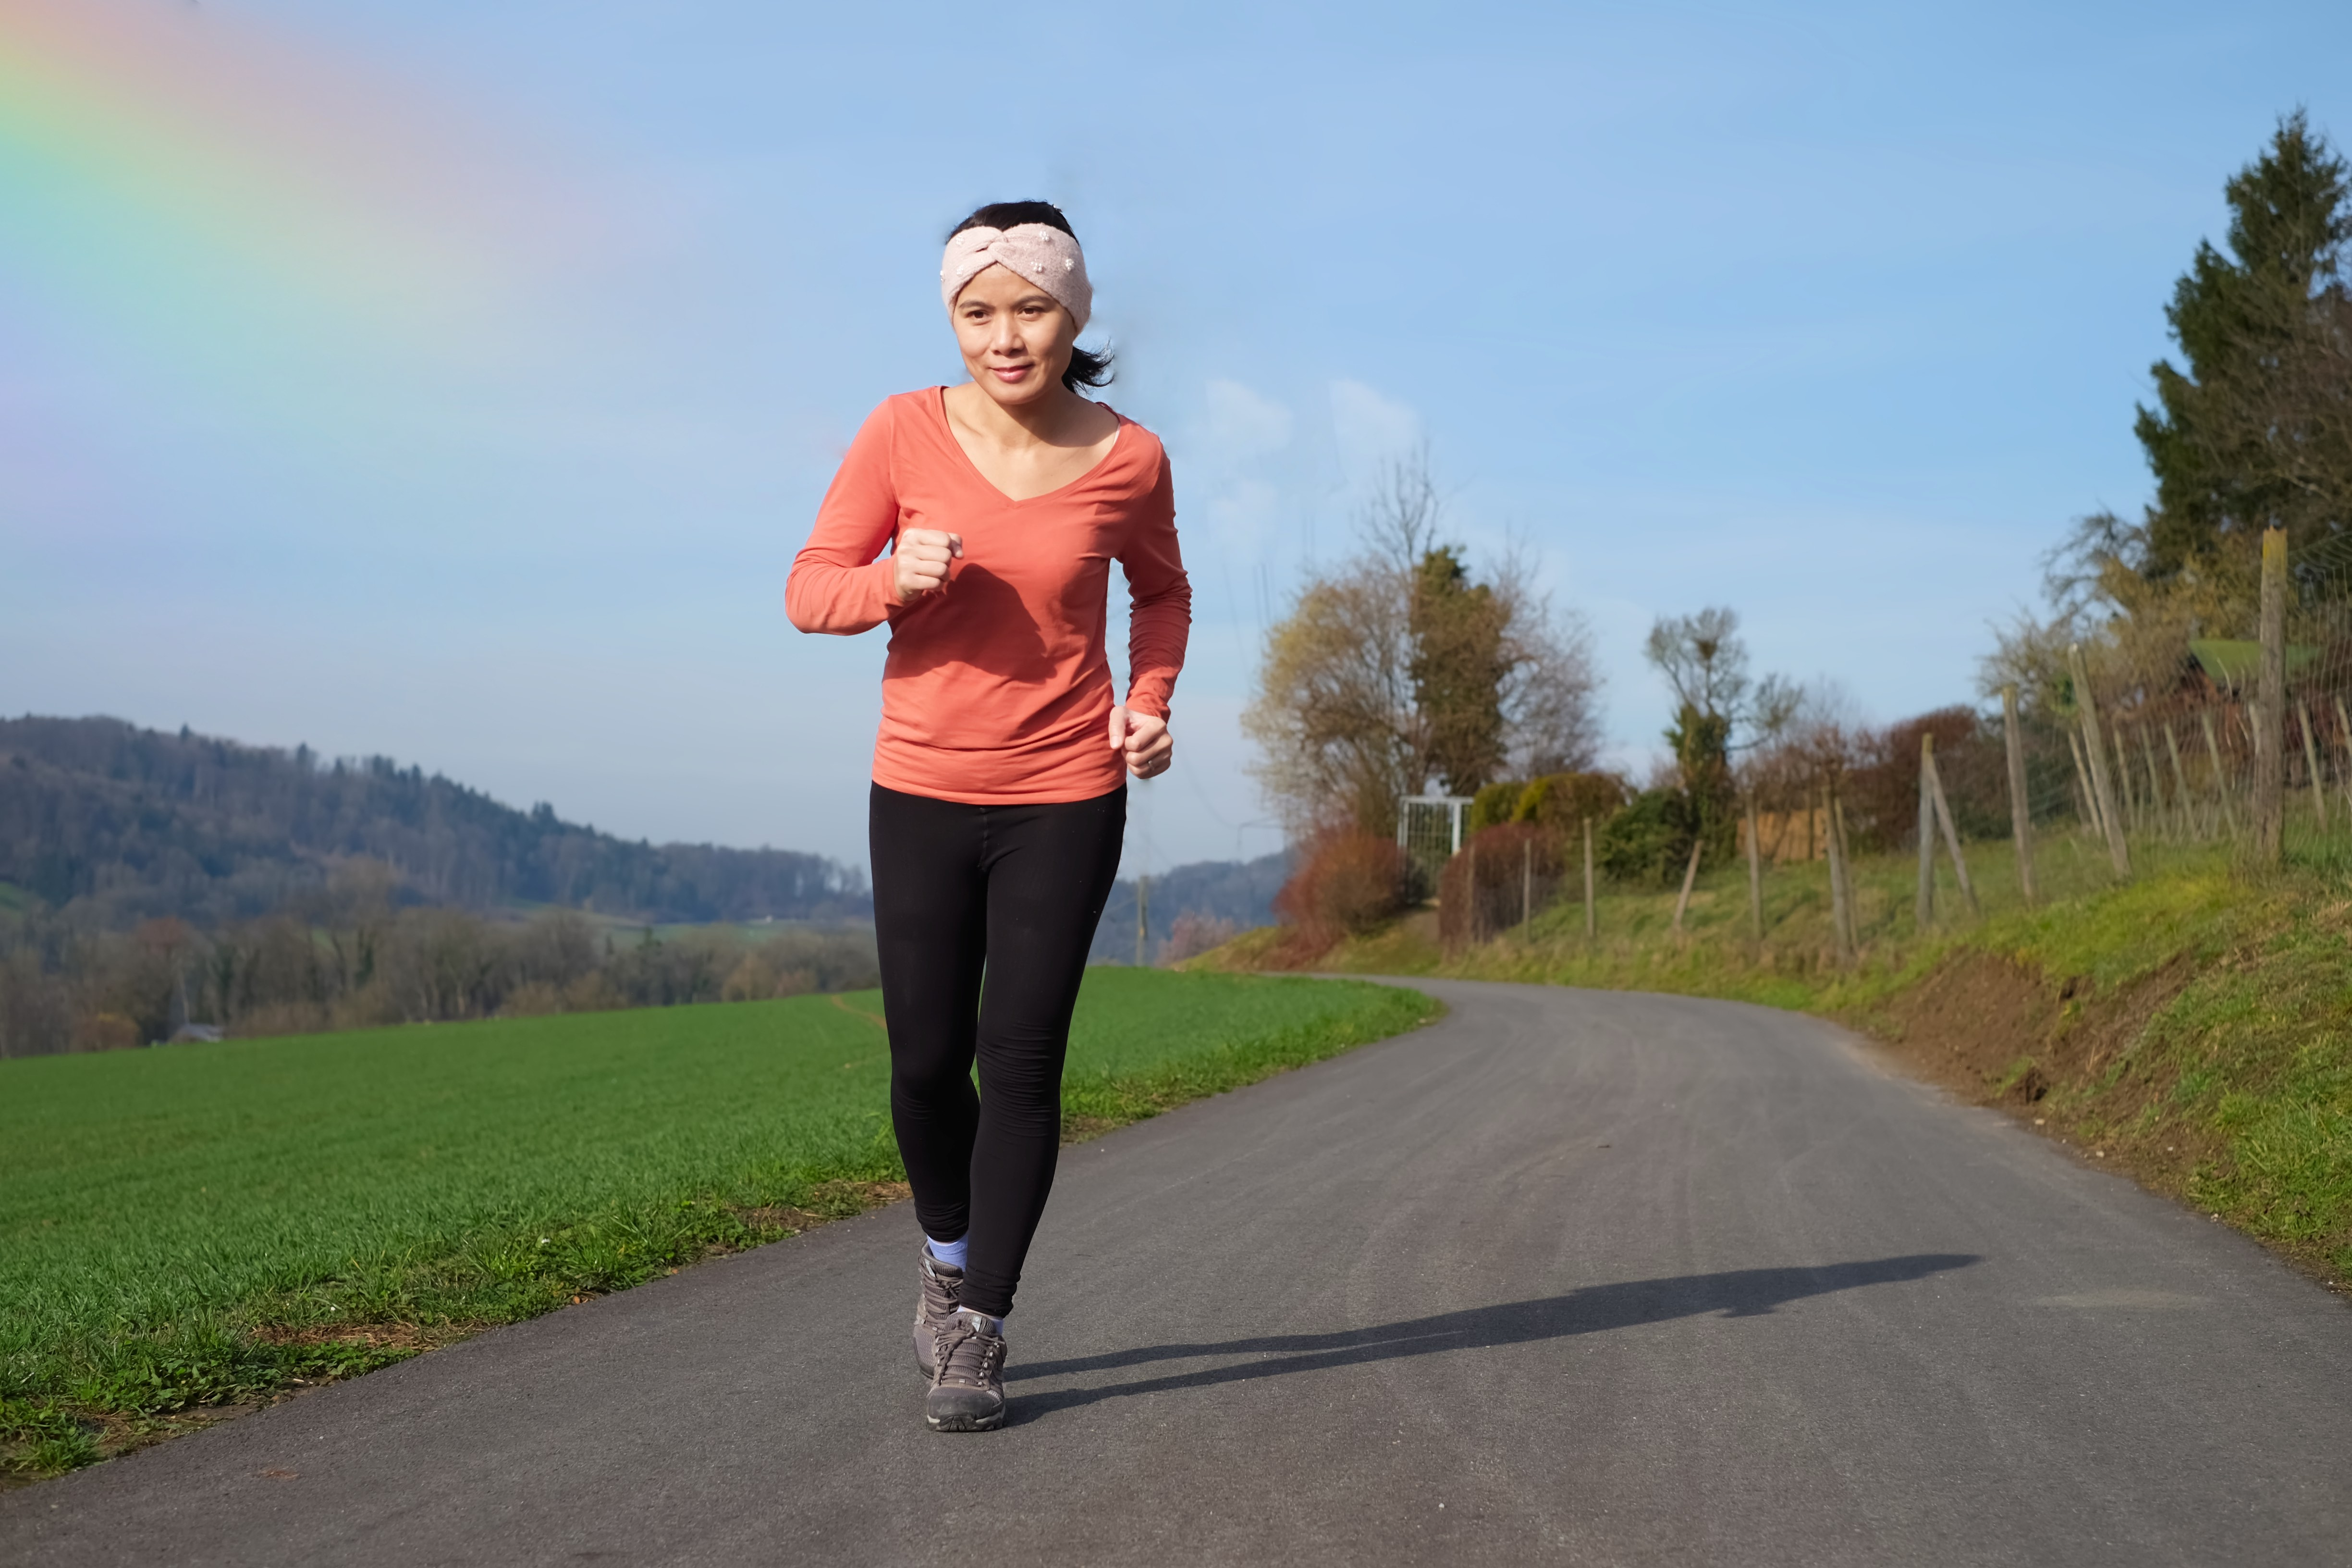 Spring is a great time to take up some gentle exercise to lose any excess weight you gained over the winter. (Kinnaree/Shutterstock)